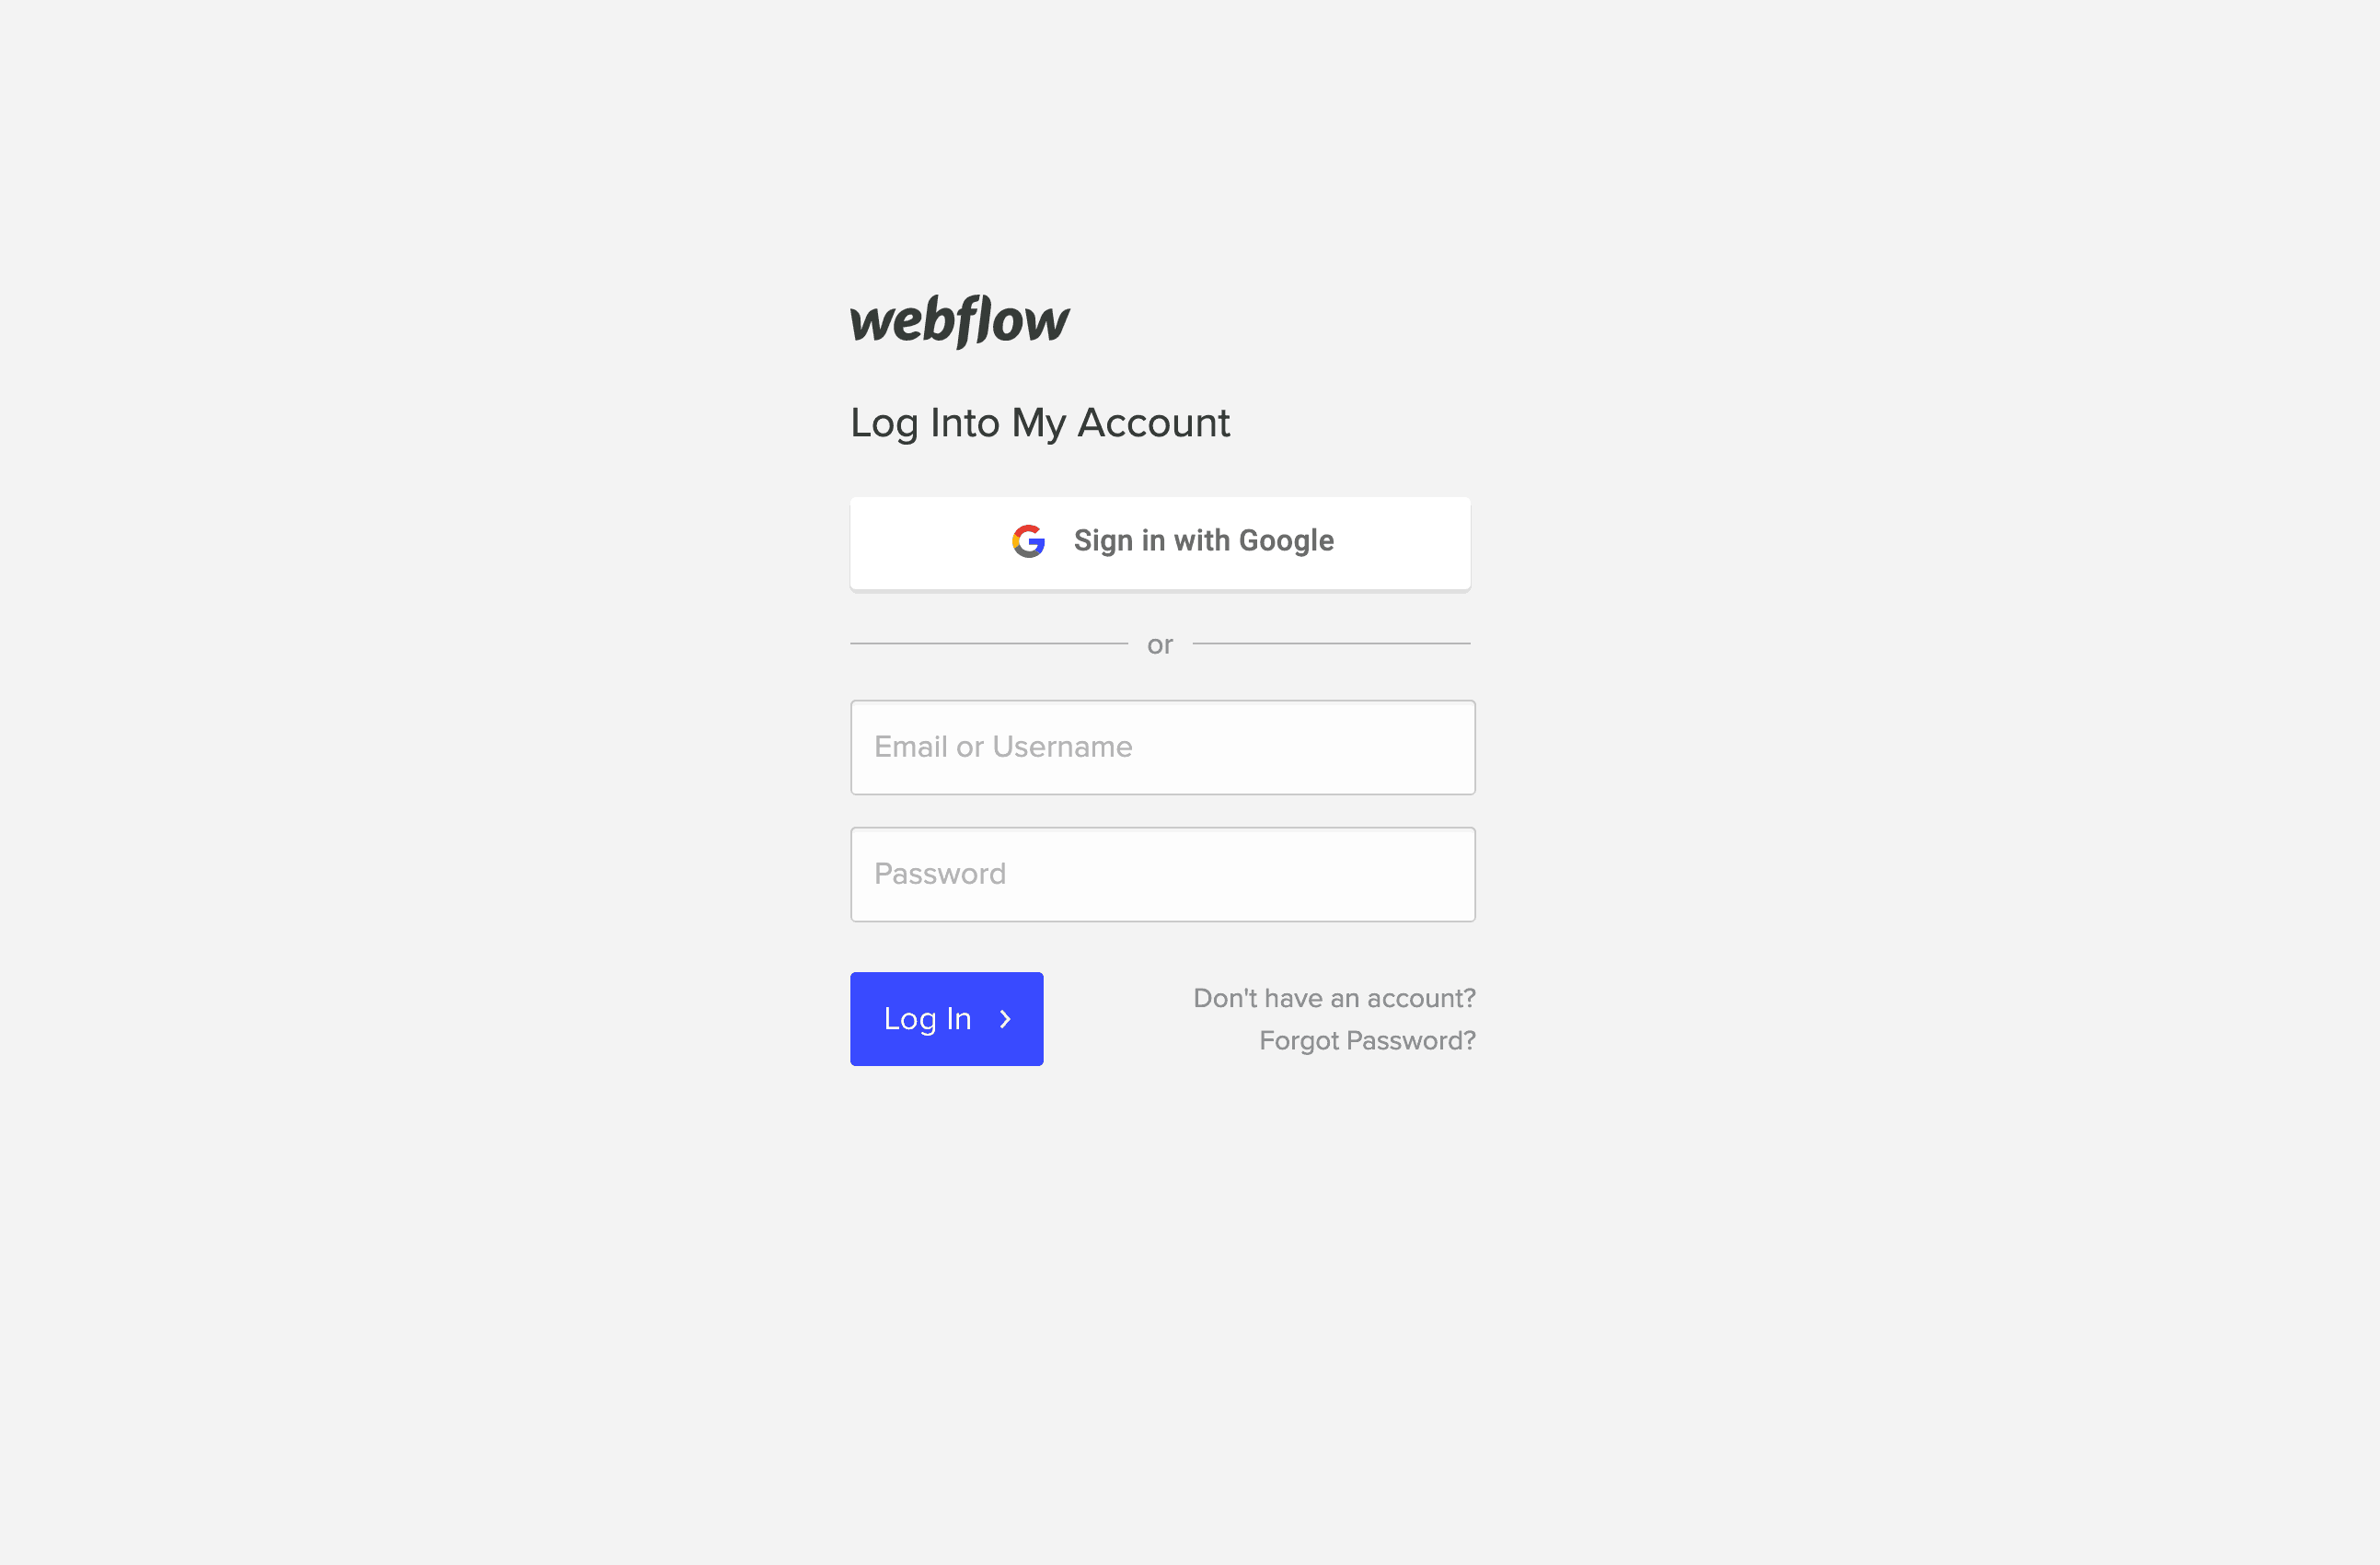 Sign in/Login by Webflow